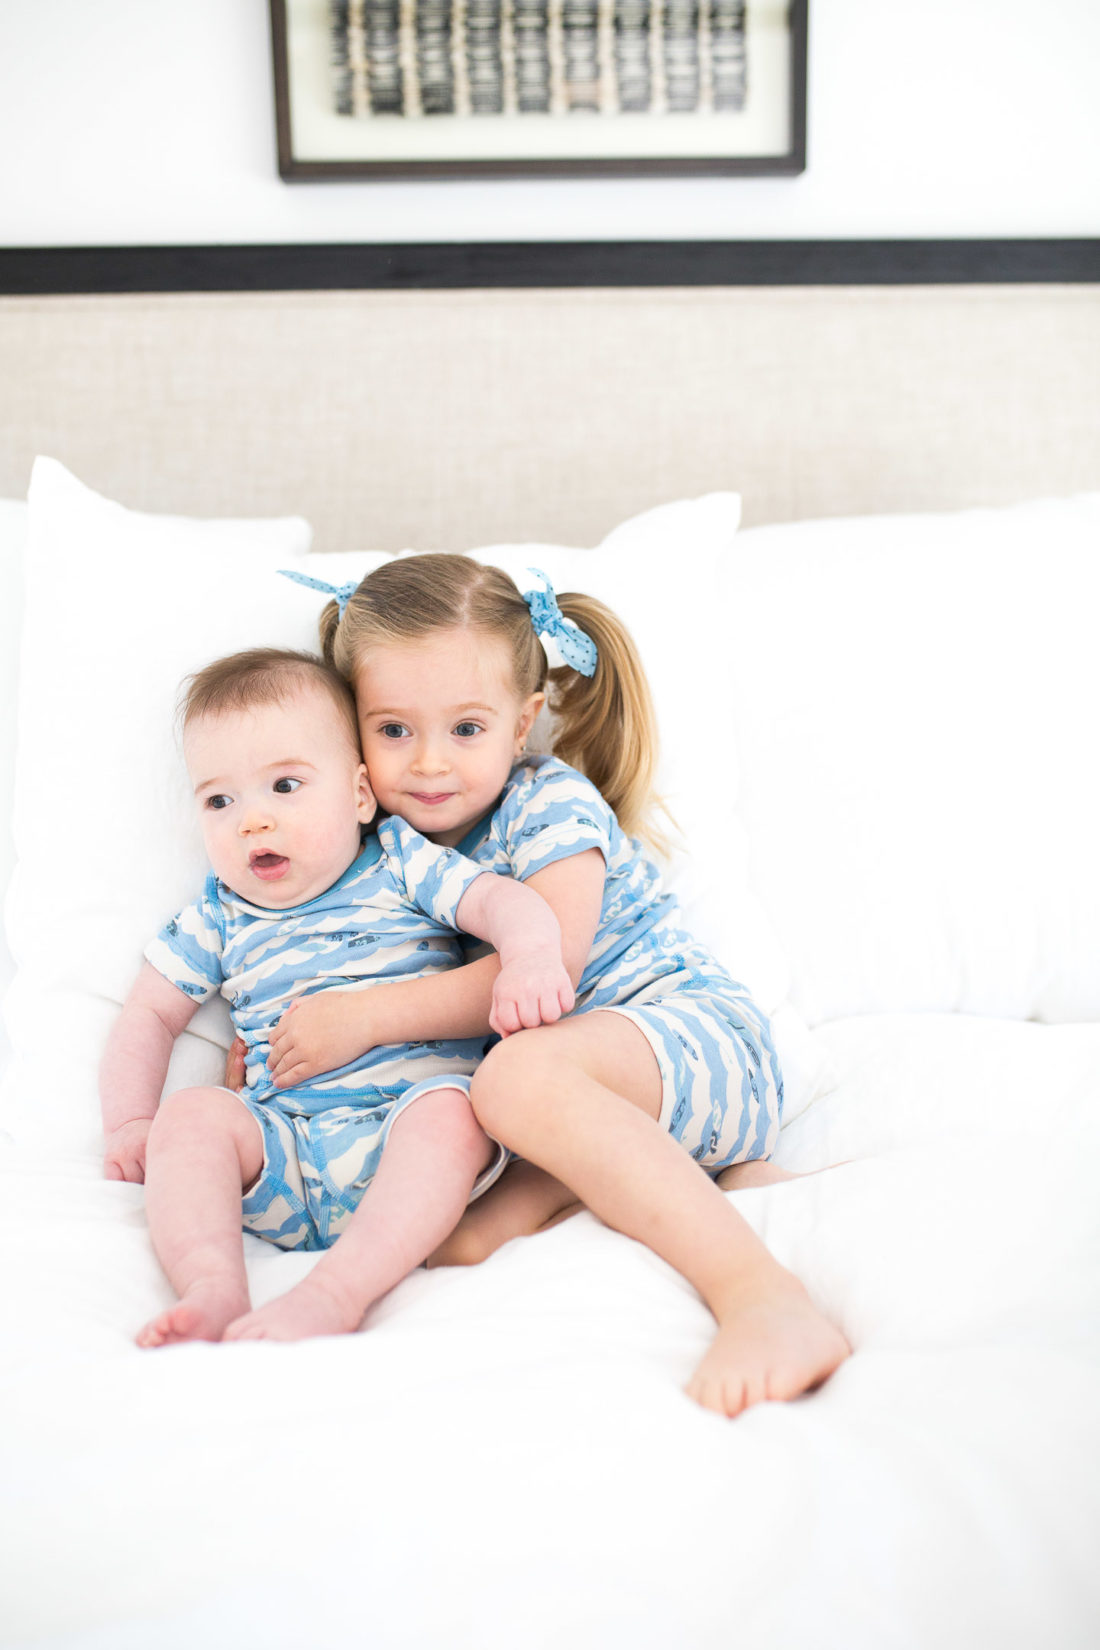 Marlowe Martino hugs her little brother Major in matching pajamas